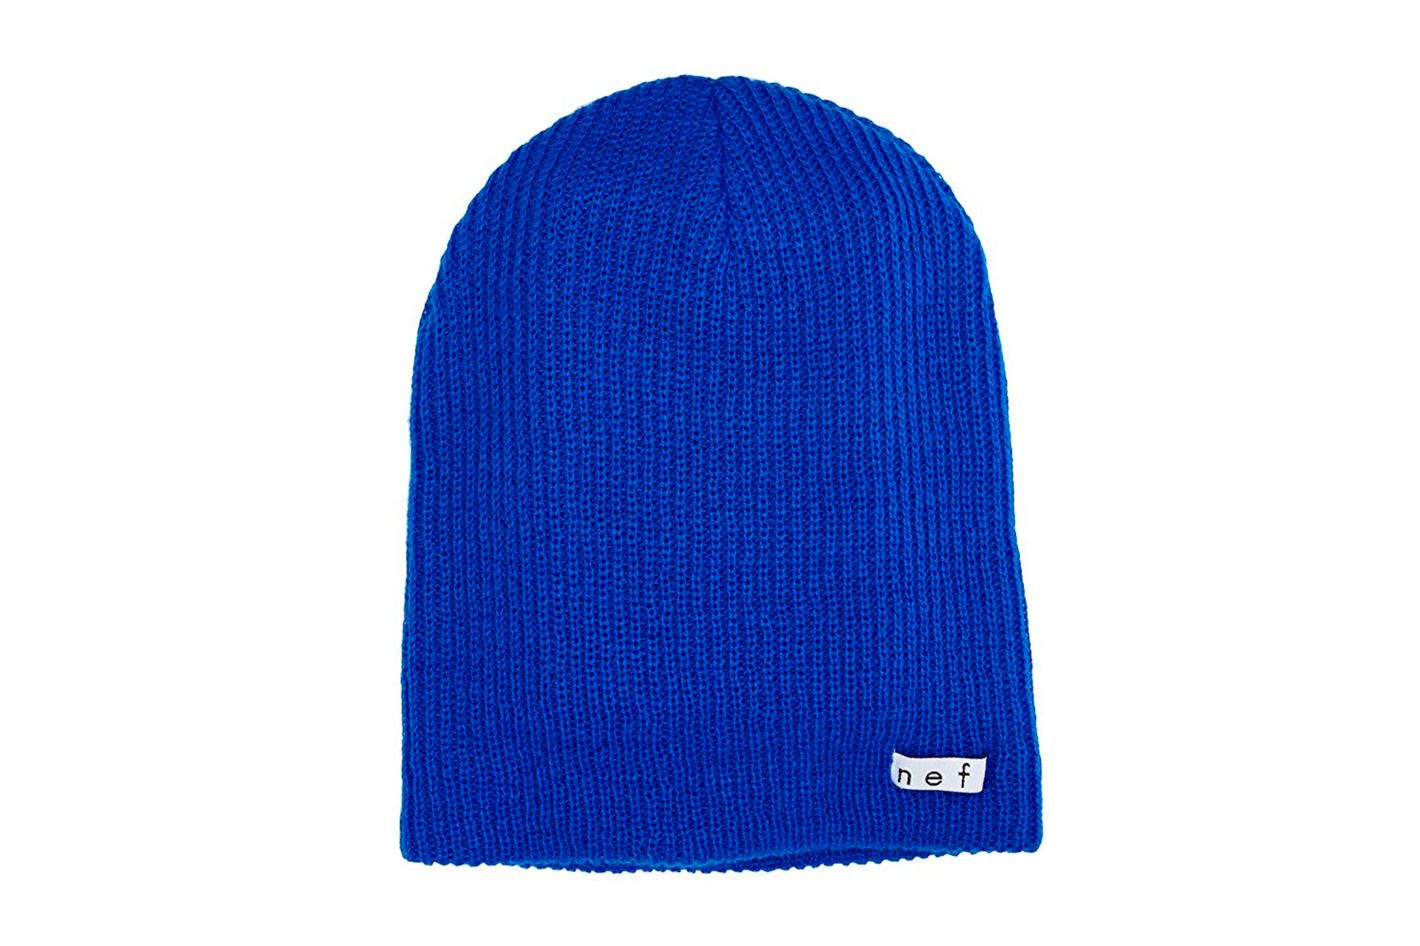 Neff Men s Daily Beanie Hat at Amazon 5389a80317c